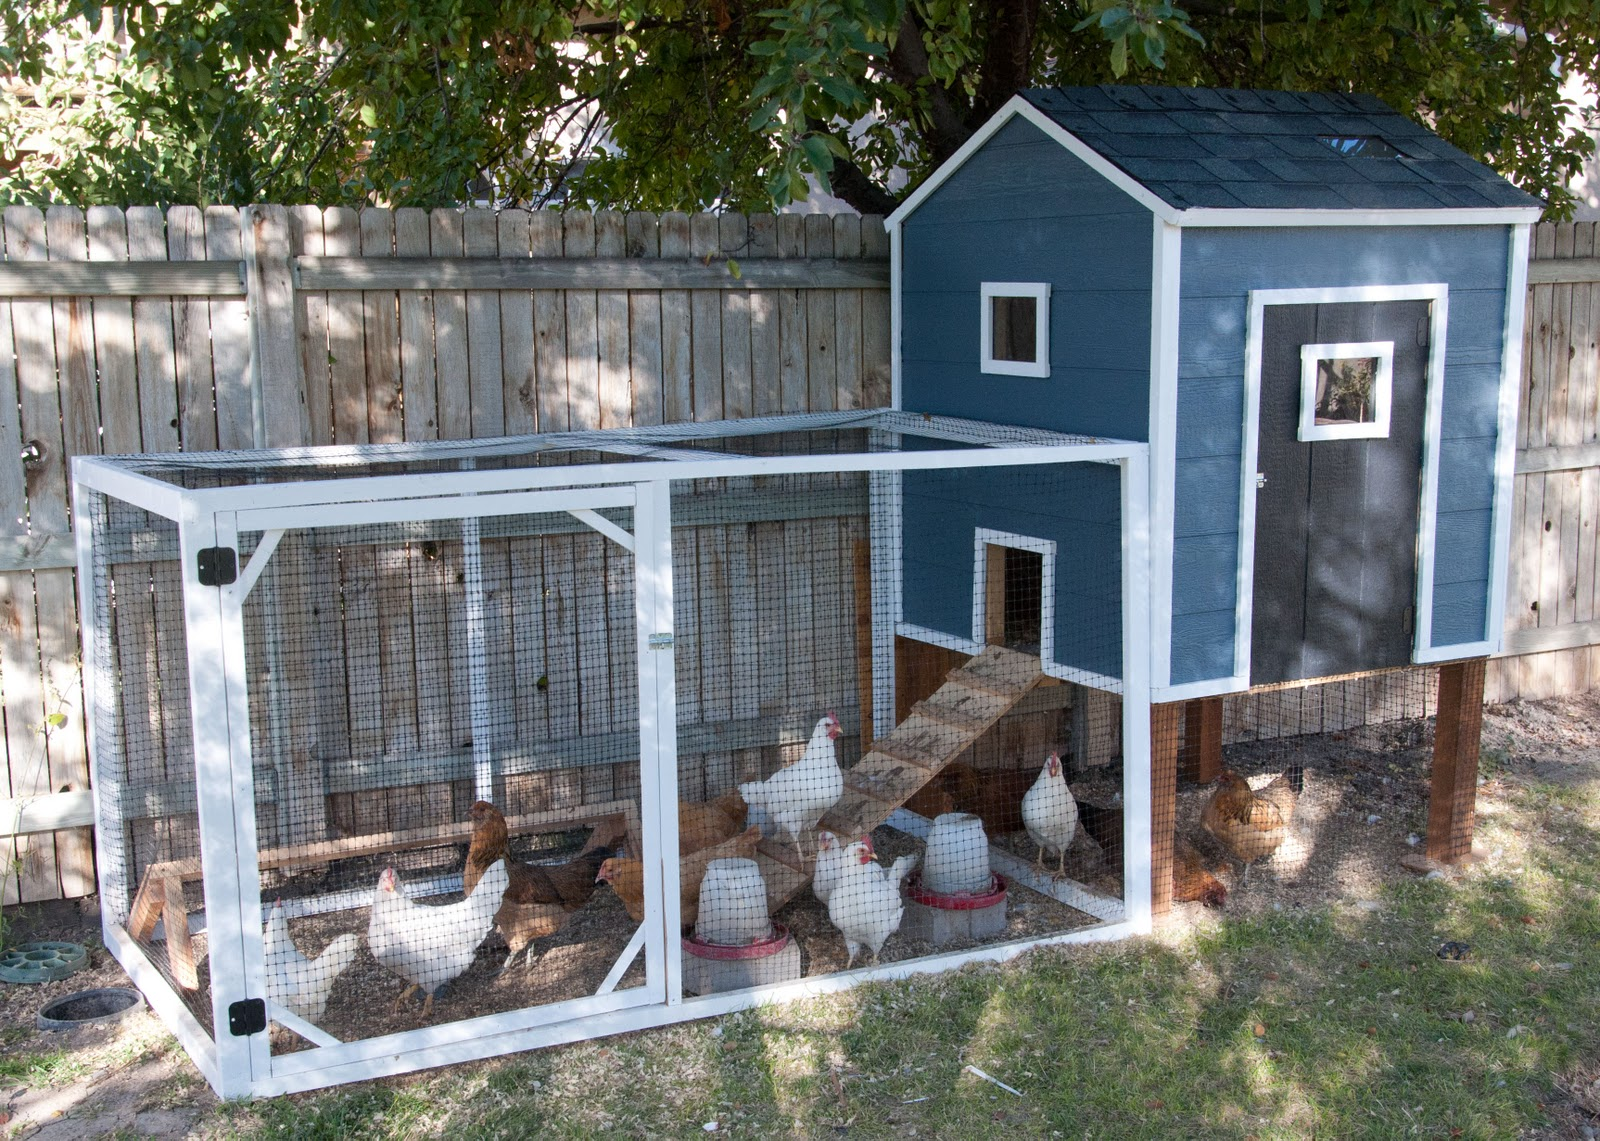 10 Fresh And Fun Chicken Coop Design Ideas - Garden Lovers Club